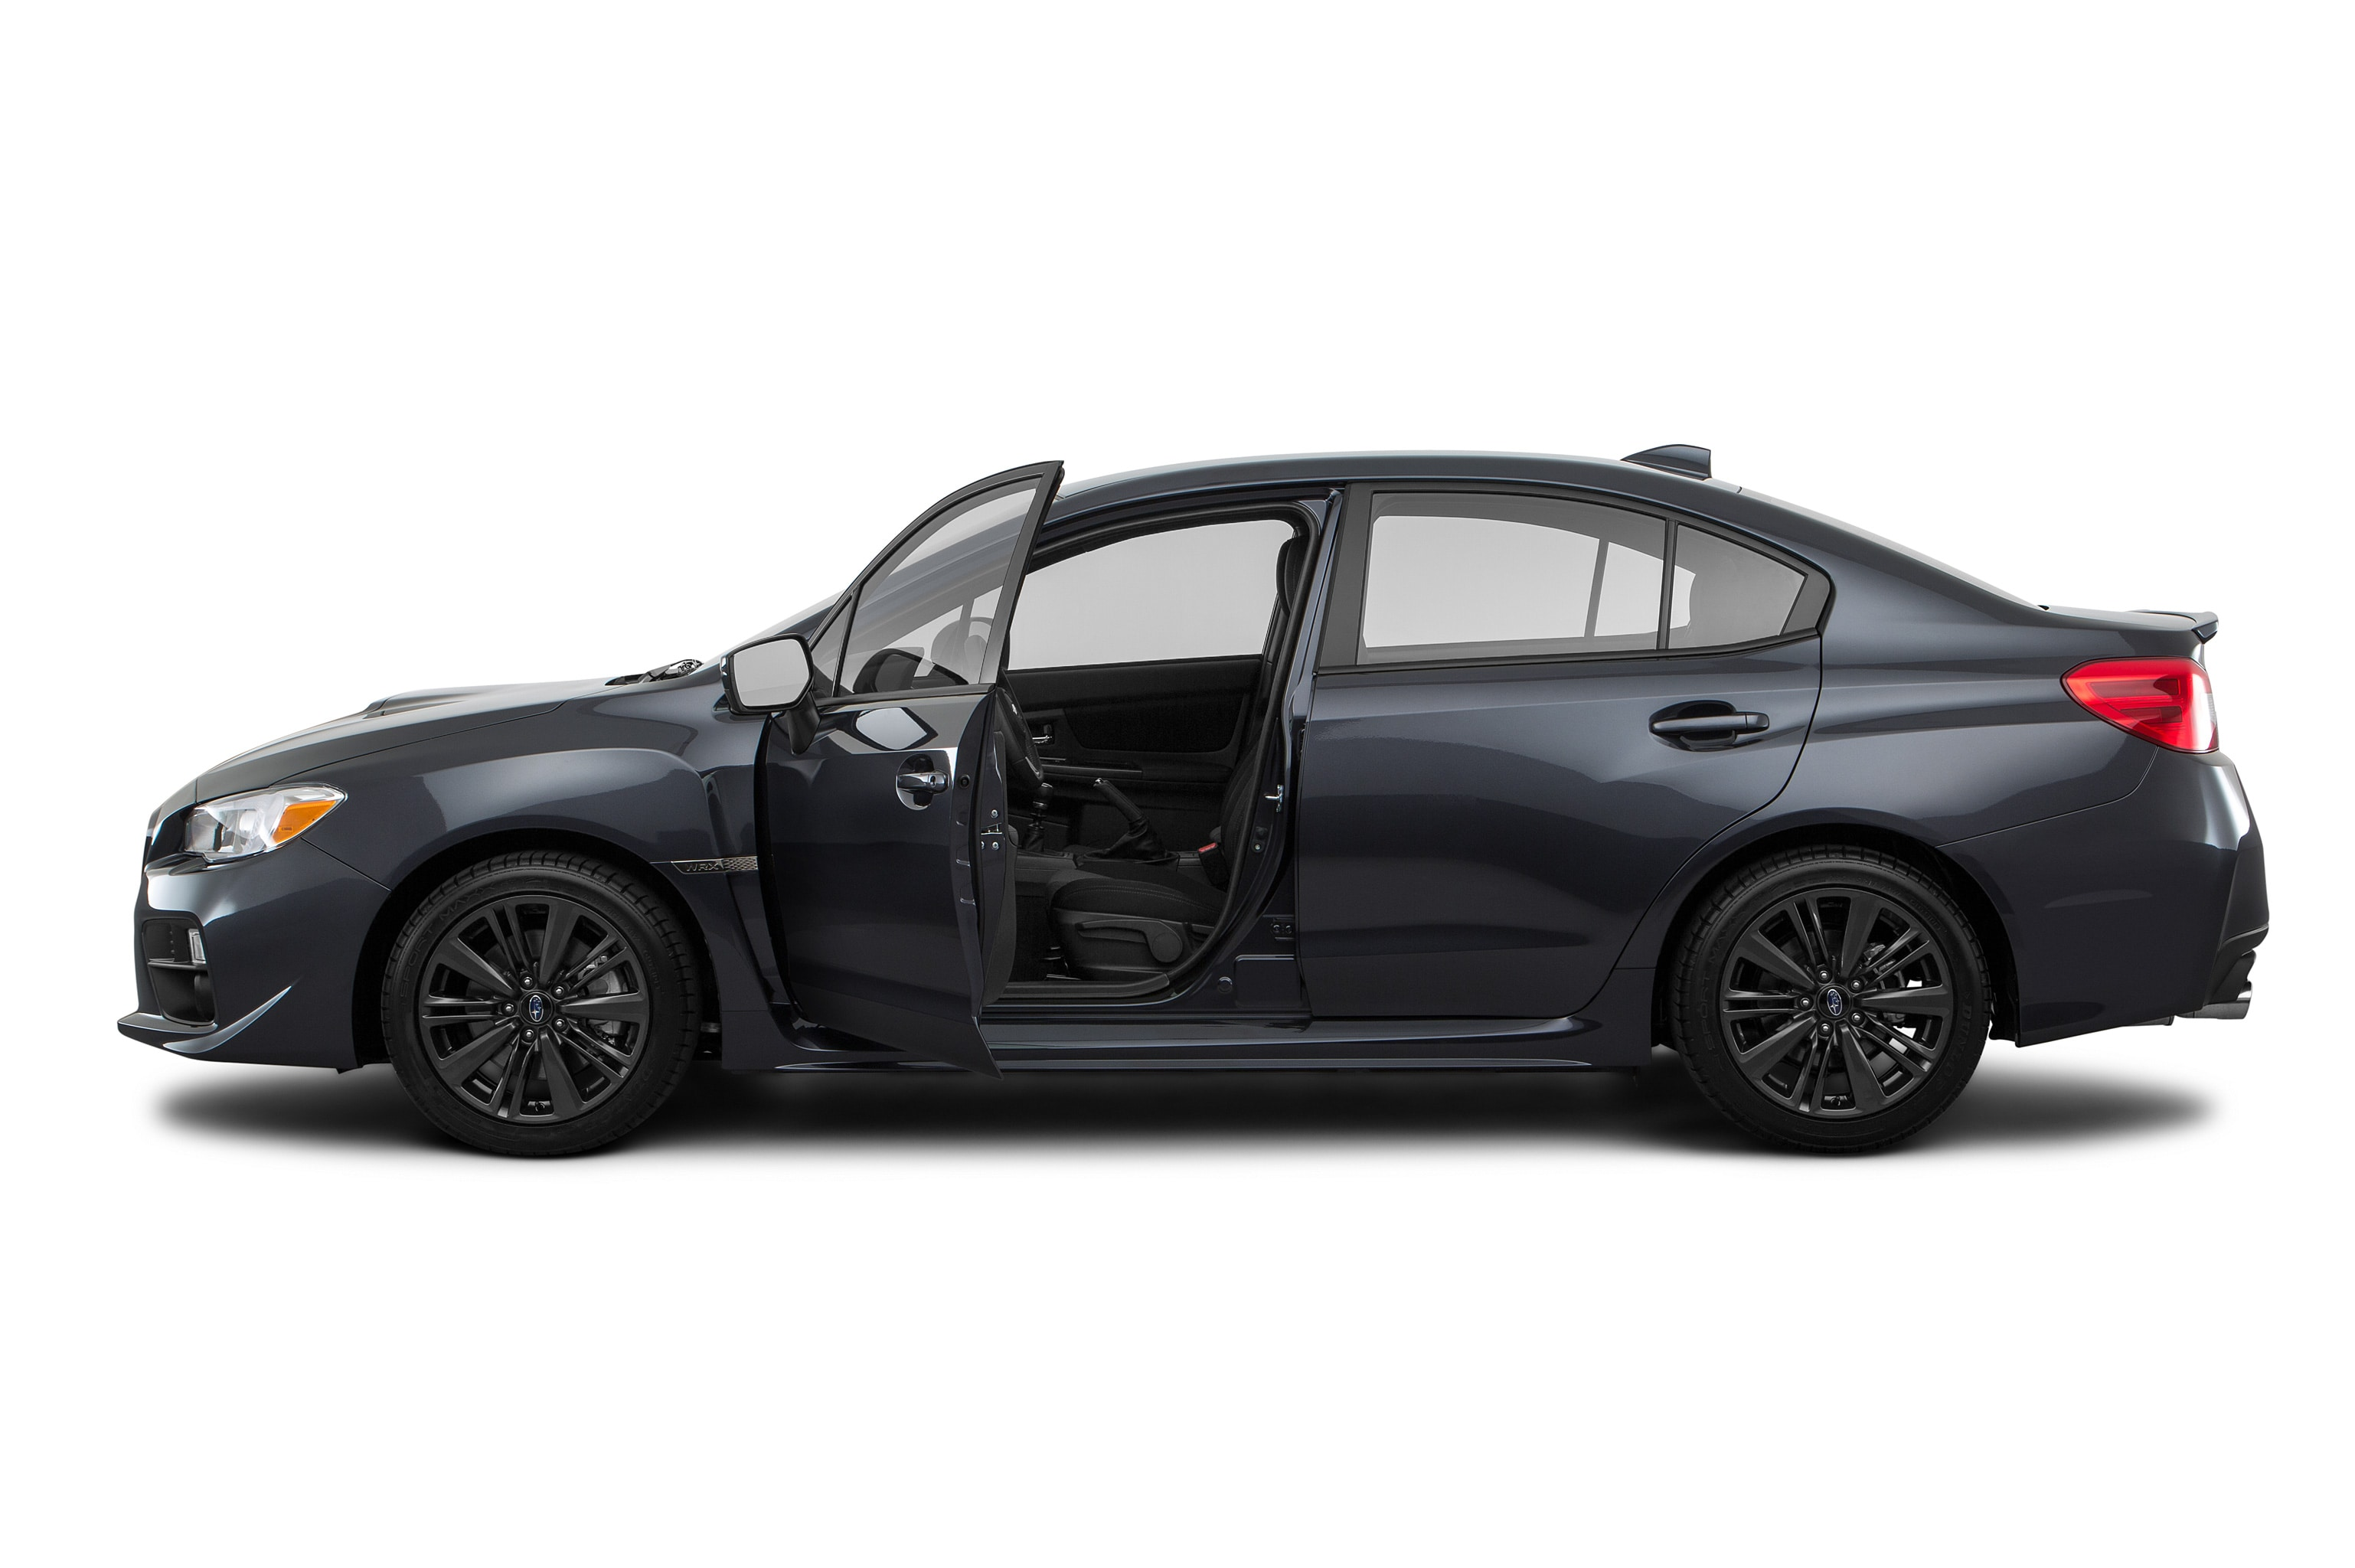 New Motors Subaru Erie Pa >> New Wrx Sti New Motors Subaru In Erie Pa Serving Jamestown